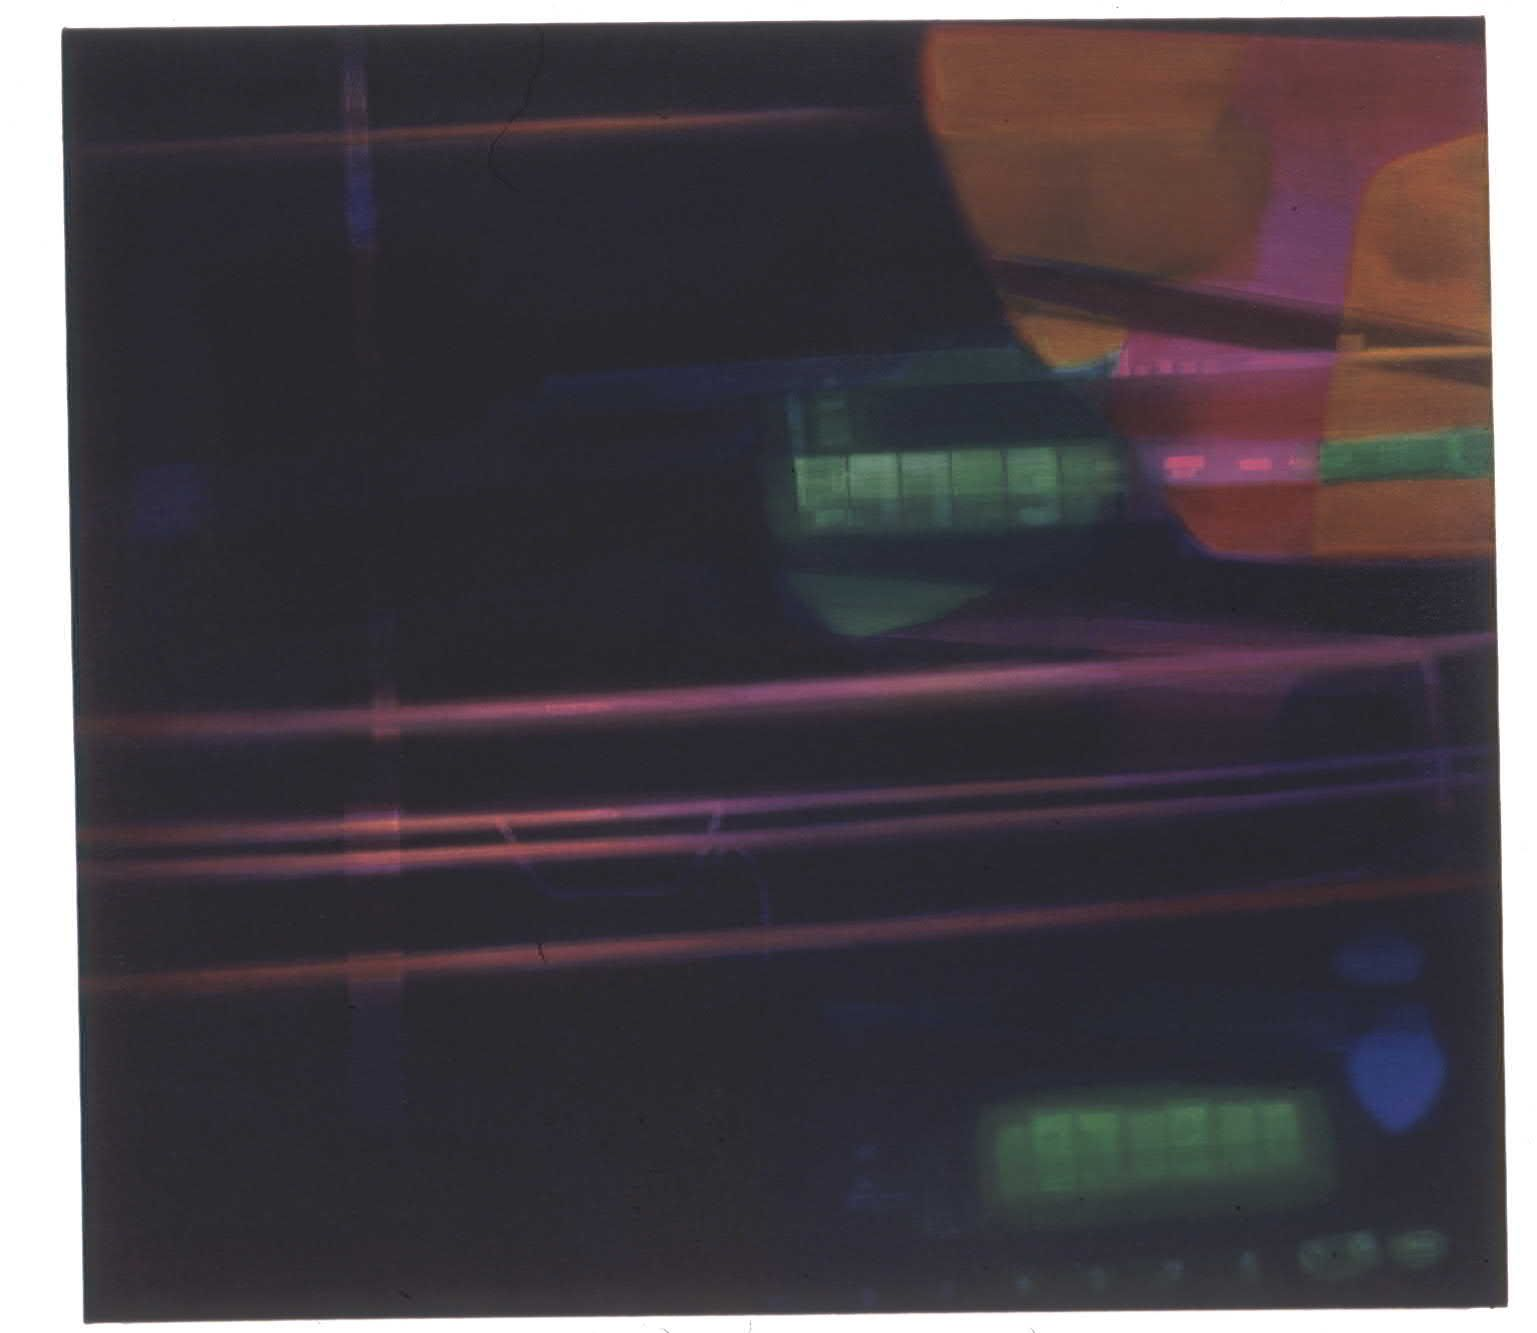 Bain de Sans Soleil II, 2003, Oil on canvas, 42 x 46 inches